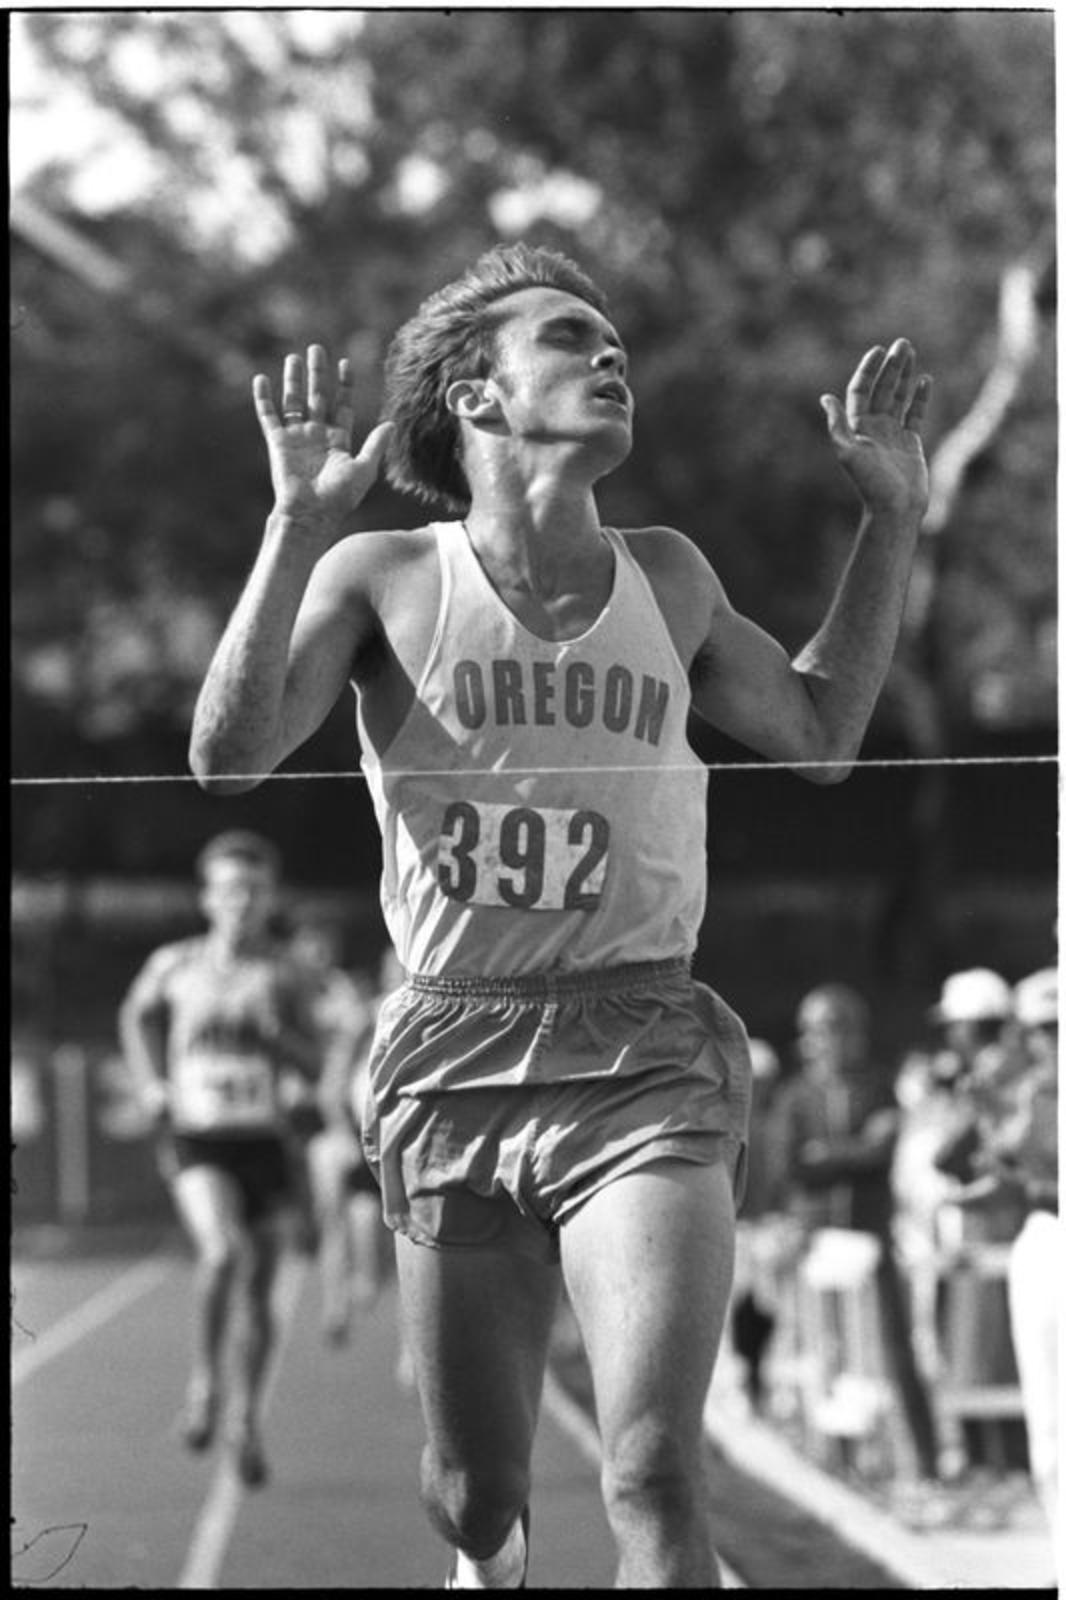 40 Years of Prefontaine - Nike News